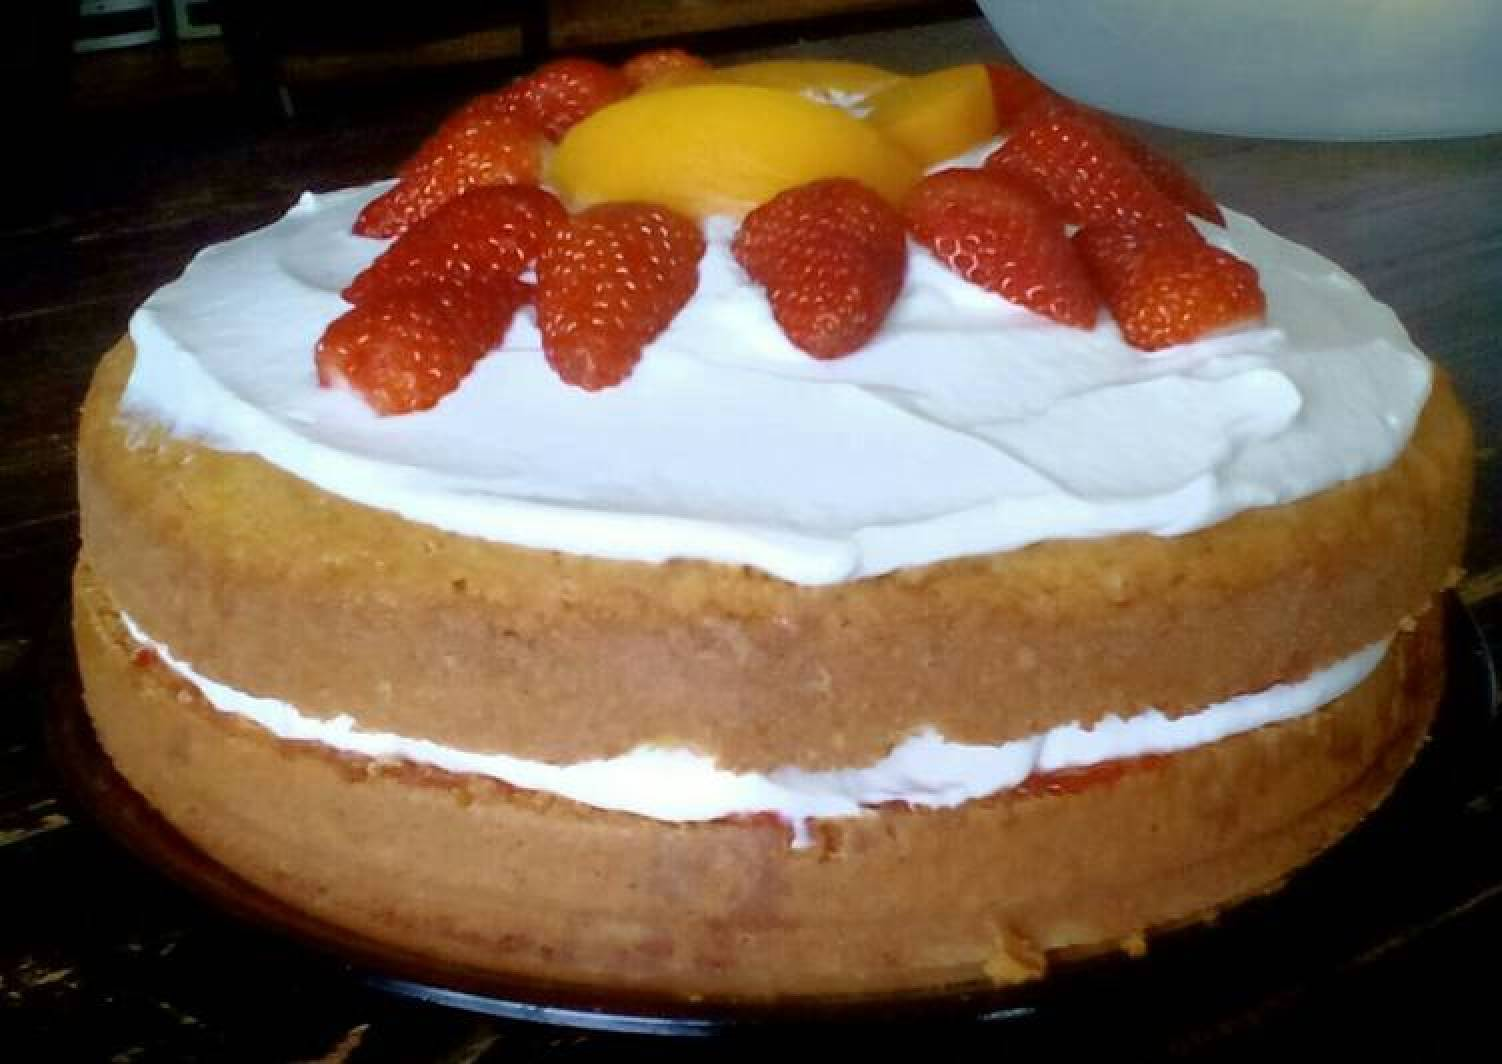 Victoria Sponge Cake with Creme Fraiche and Fruit Topping